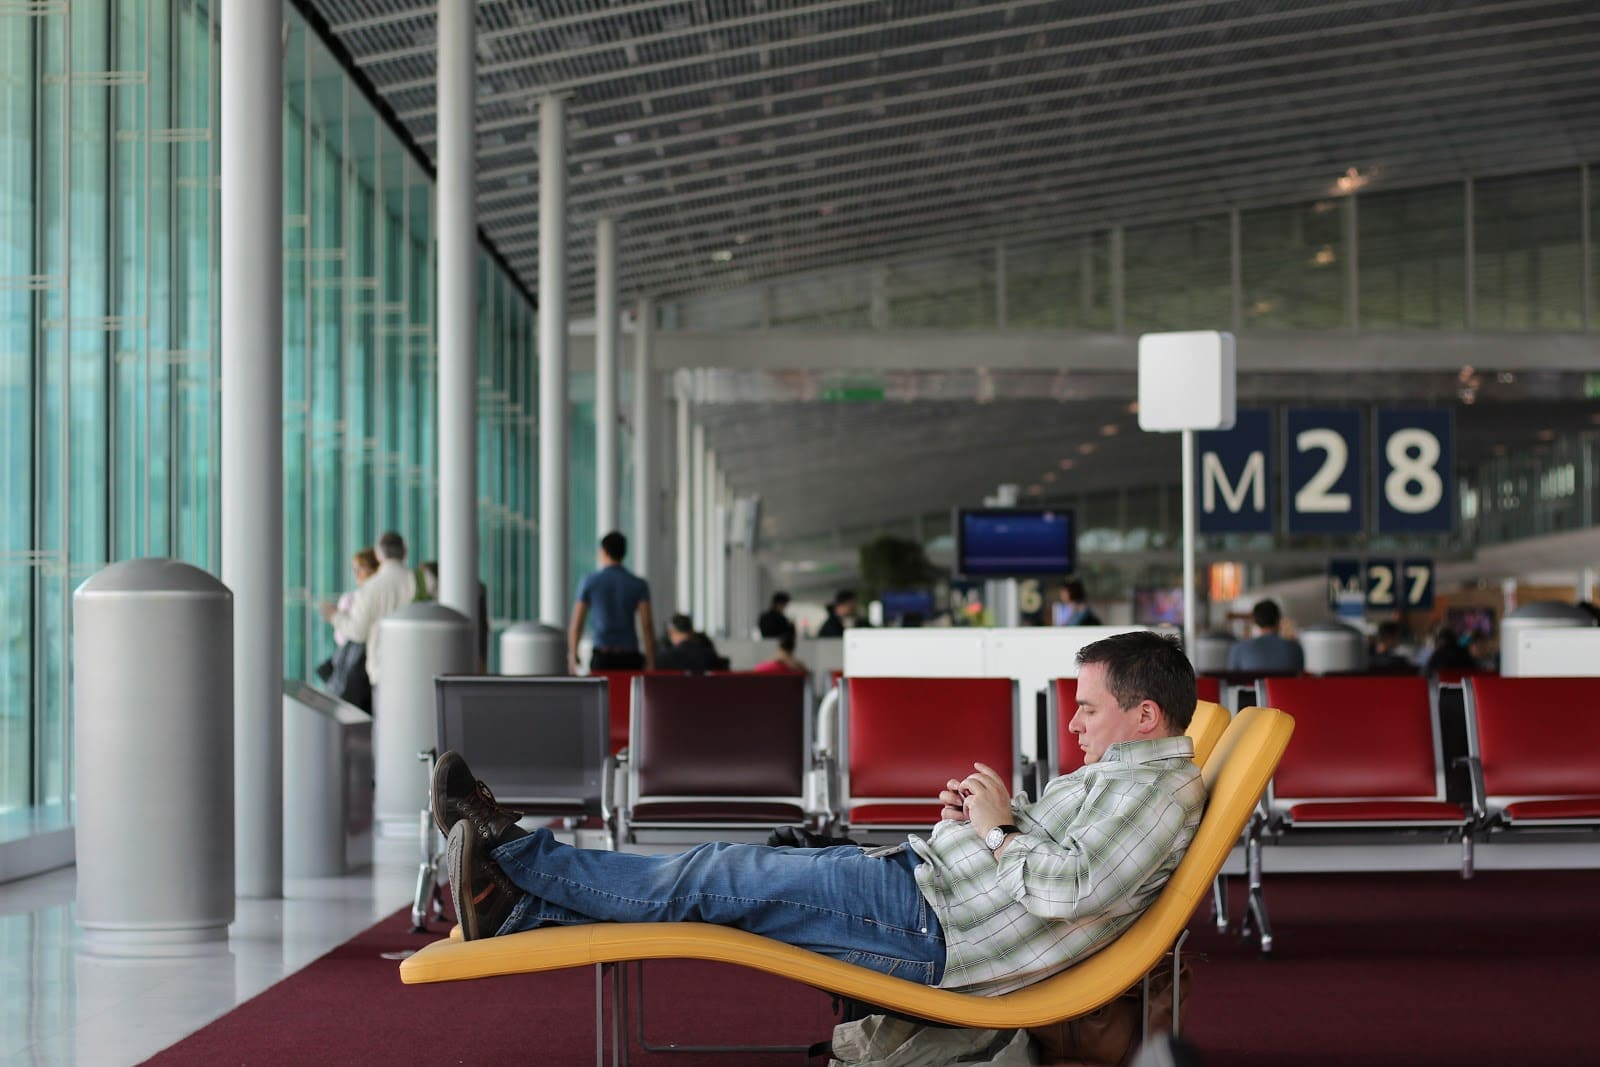 Airport Operations: What Are the Common Roles In This Field?